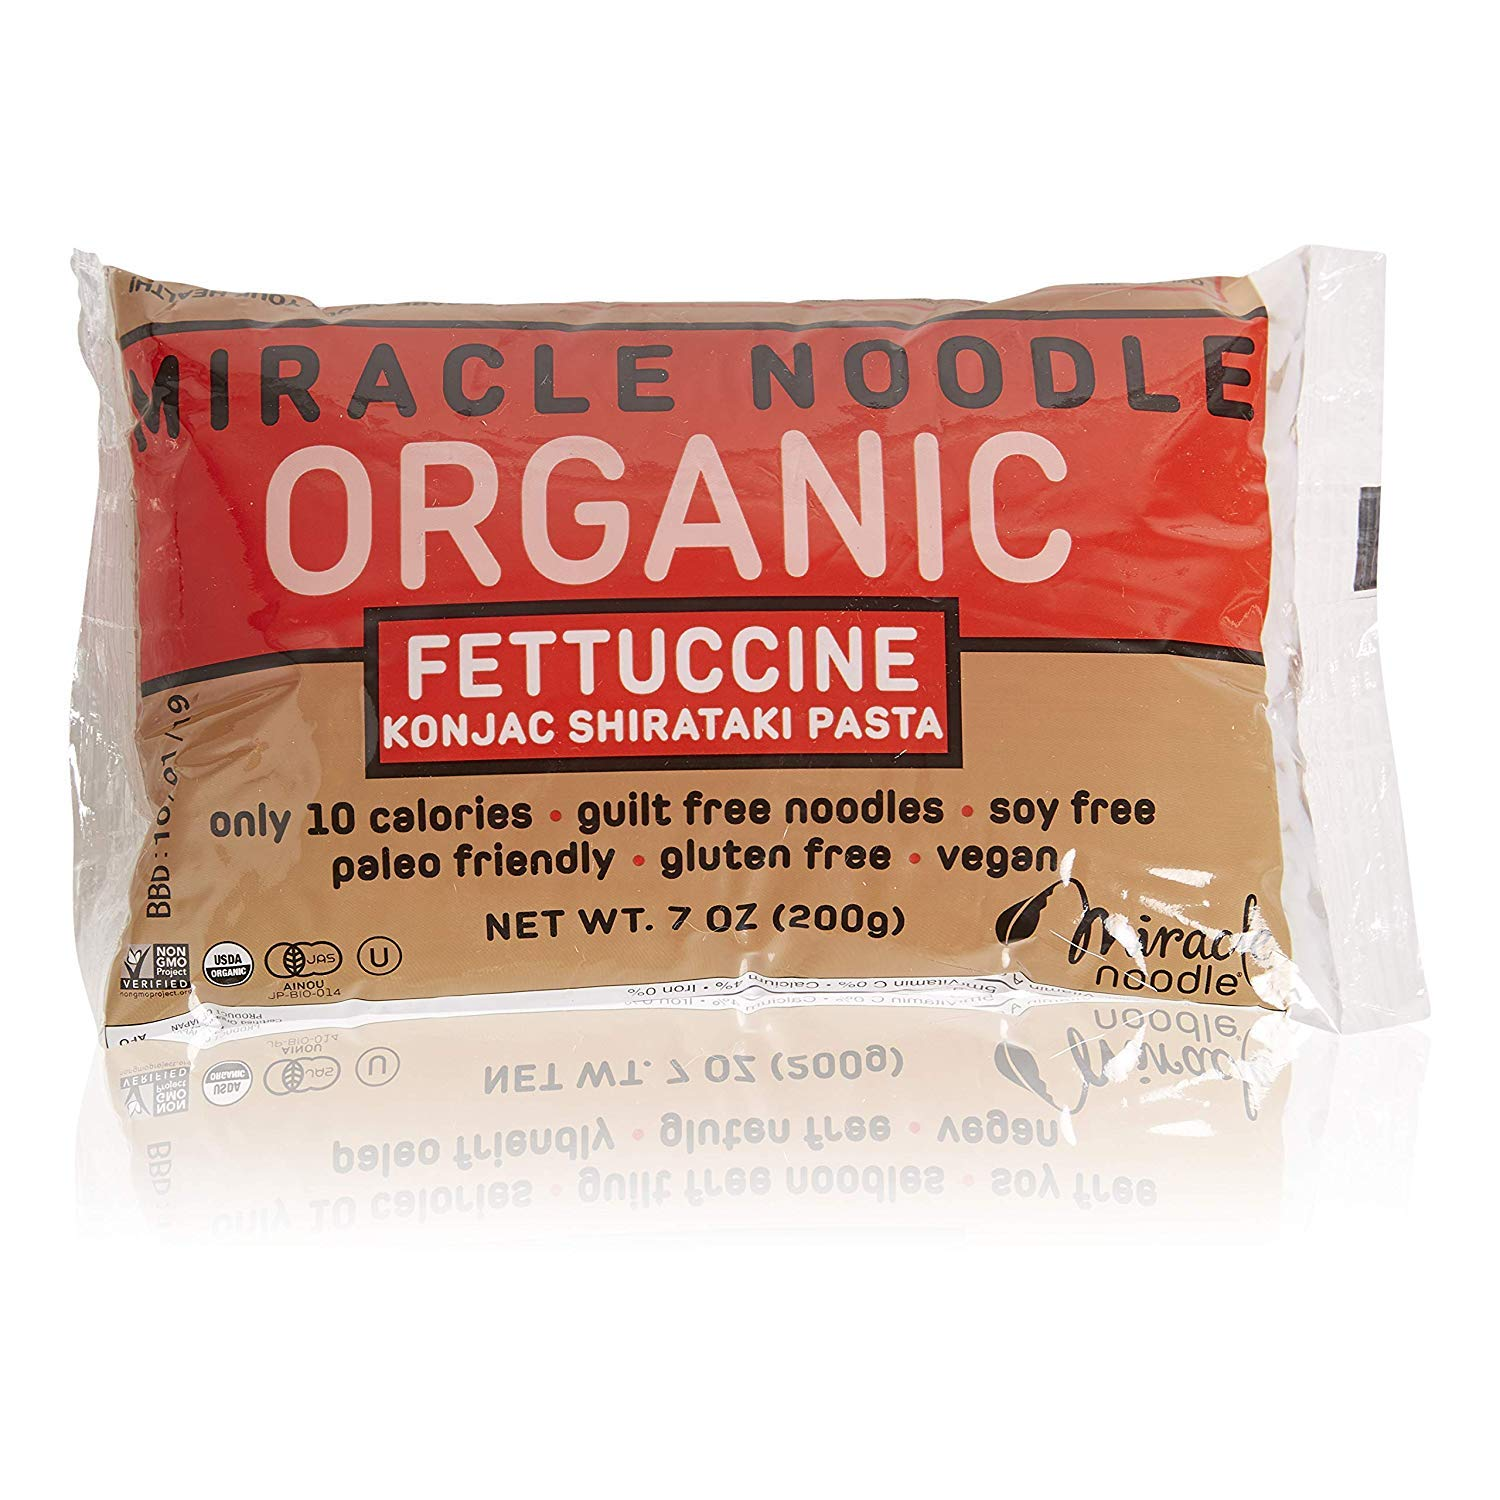 Miracle Noodle Organic Shirataki Fettuccini, Gluten-Free, Zero Carb, Keto, Vegan, Soy Free, Paleo, Blood Sugar Friendly, 7oz (Pack of 12) by Miracle Noodle